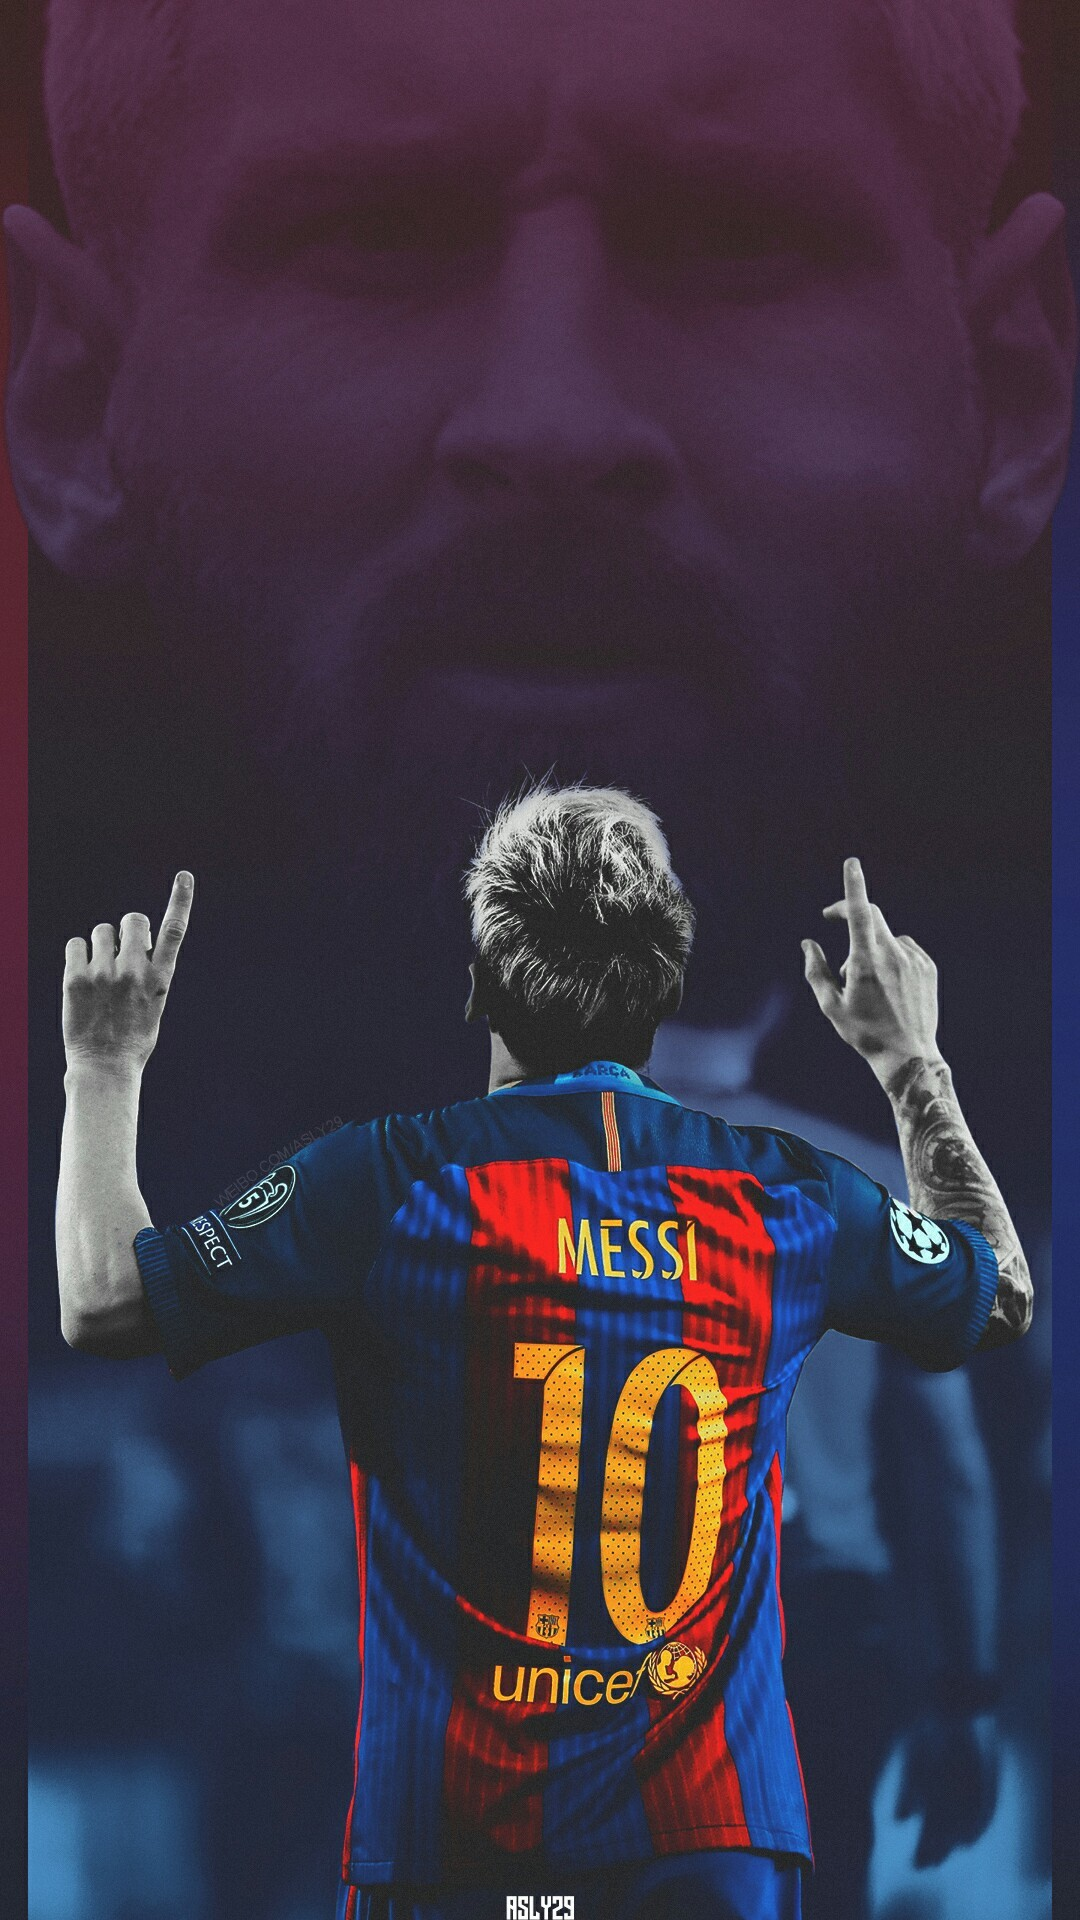 Download Argentine Girl Wallpaper For Mac: Lionel Messi Wallpaper 2018 (74+ Images